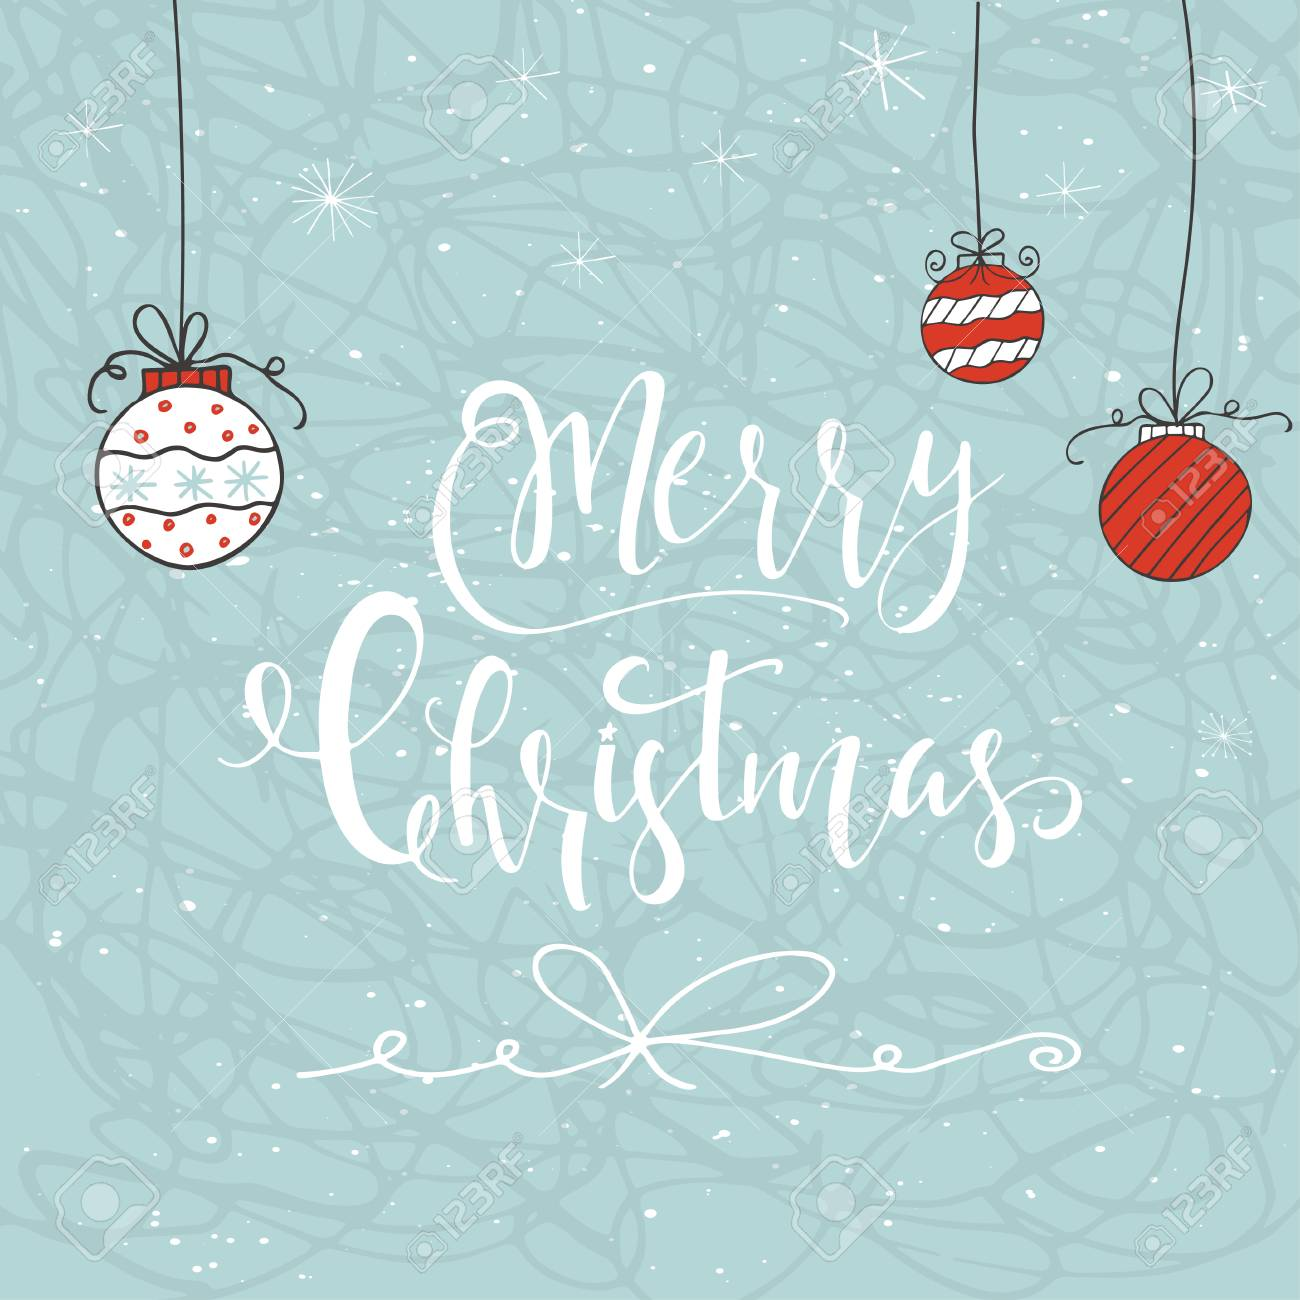 Christmas Gift Card Poster.Cute Christmas Gift Card With Lettering Quote Merry Christmas